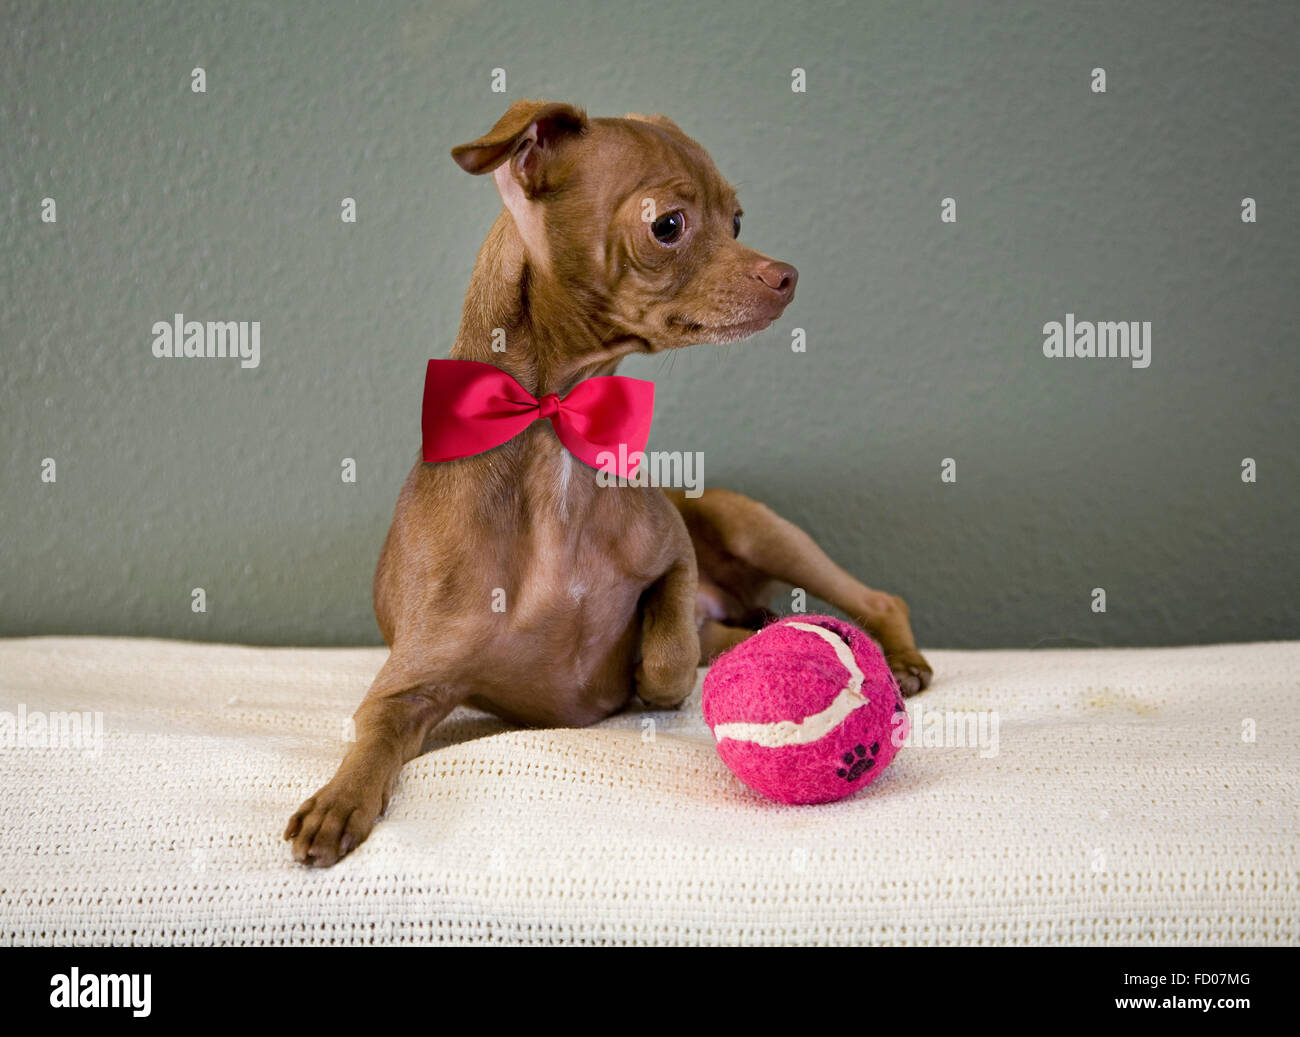 A small, Mexican hairless Chihuahua with a red tennis ball - Stock Image